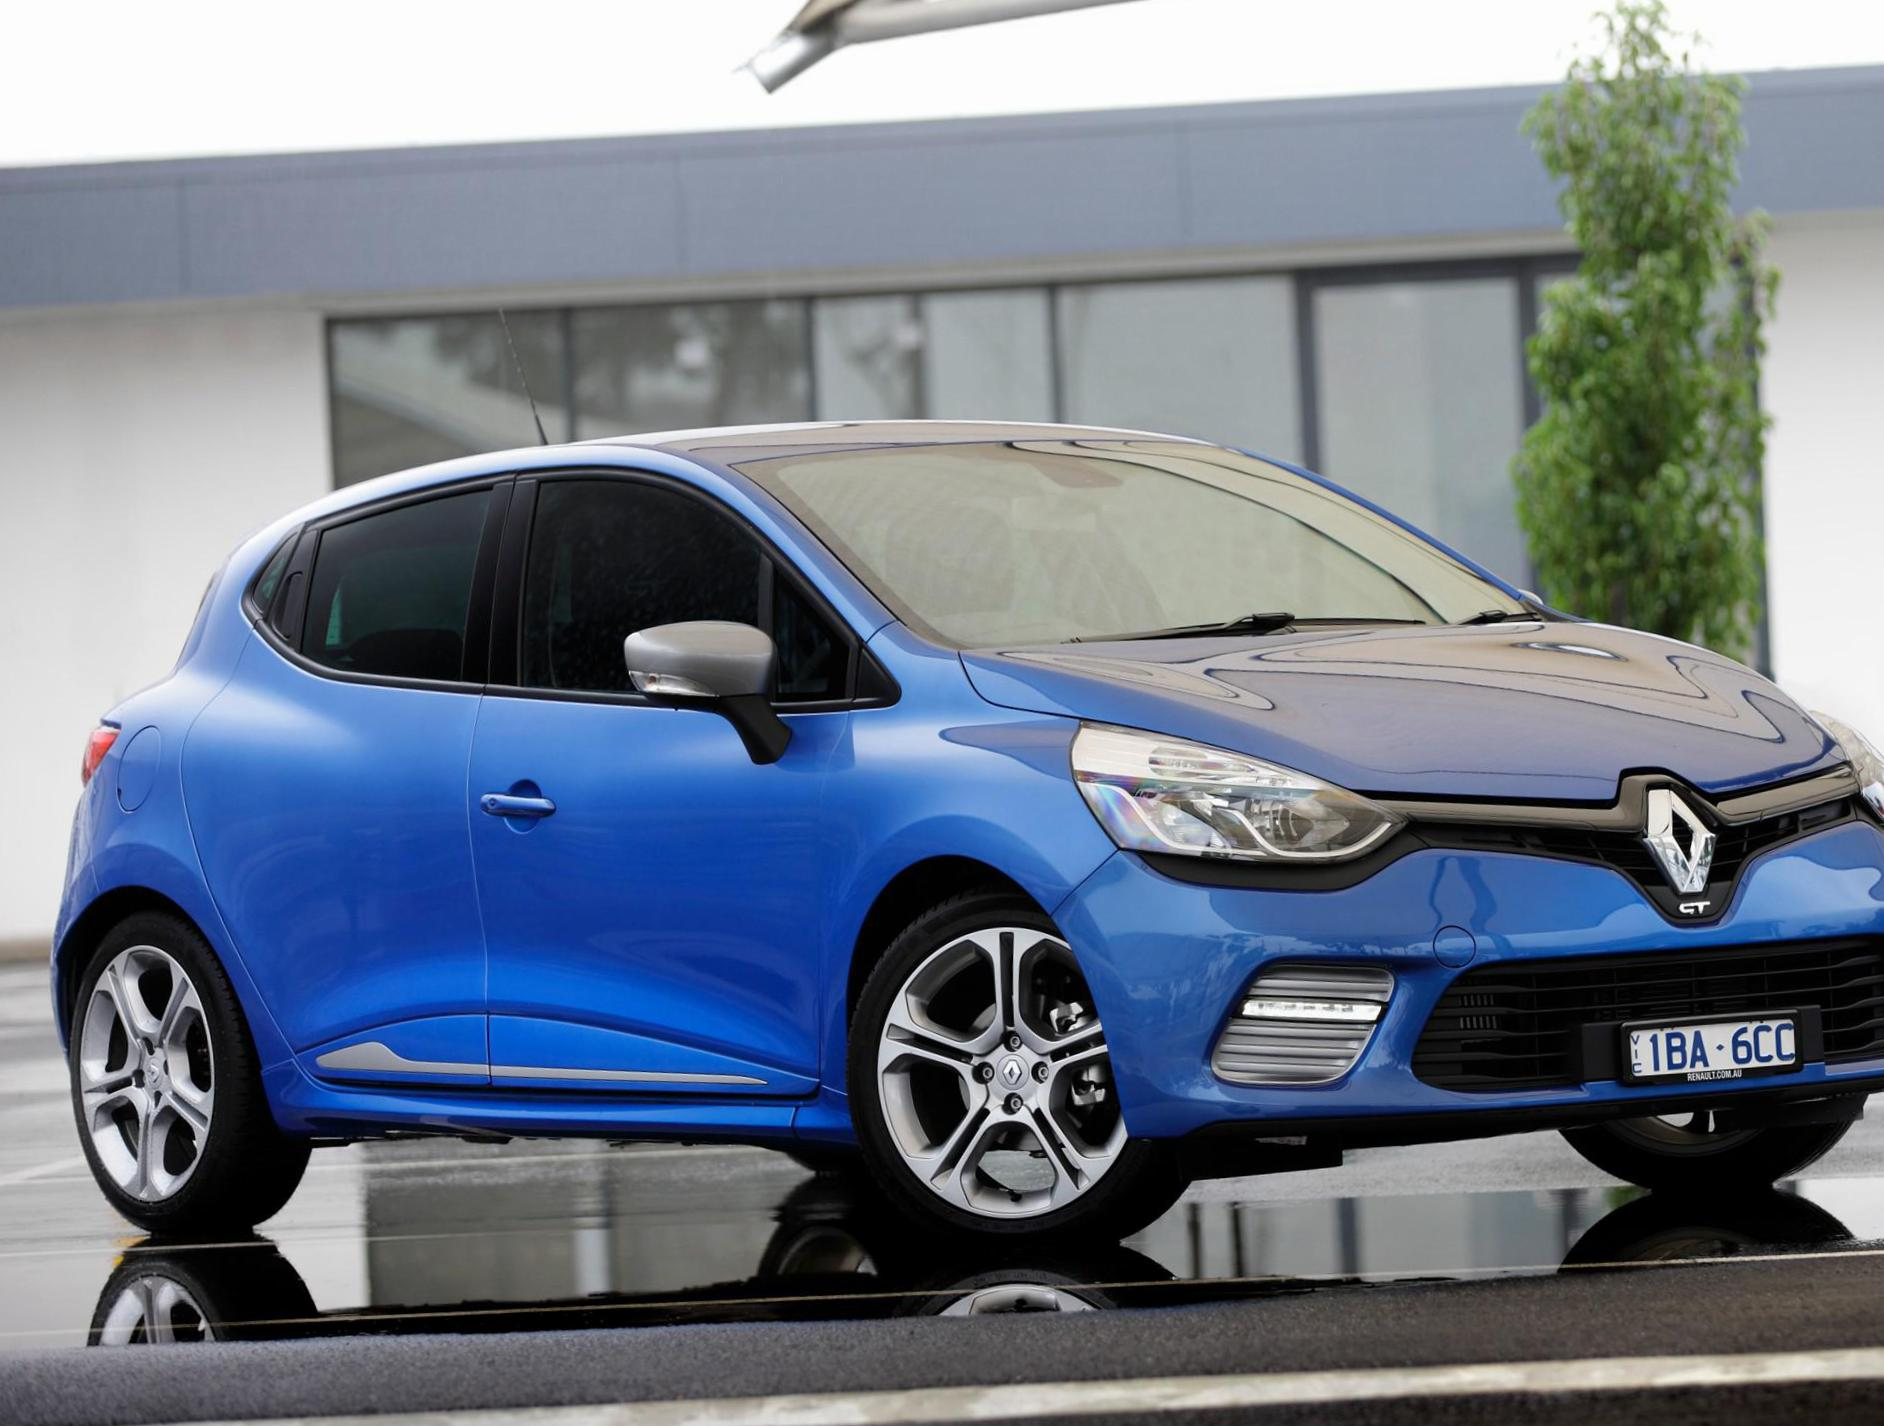 Renault Clio GT used 2013